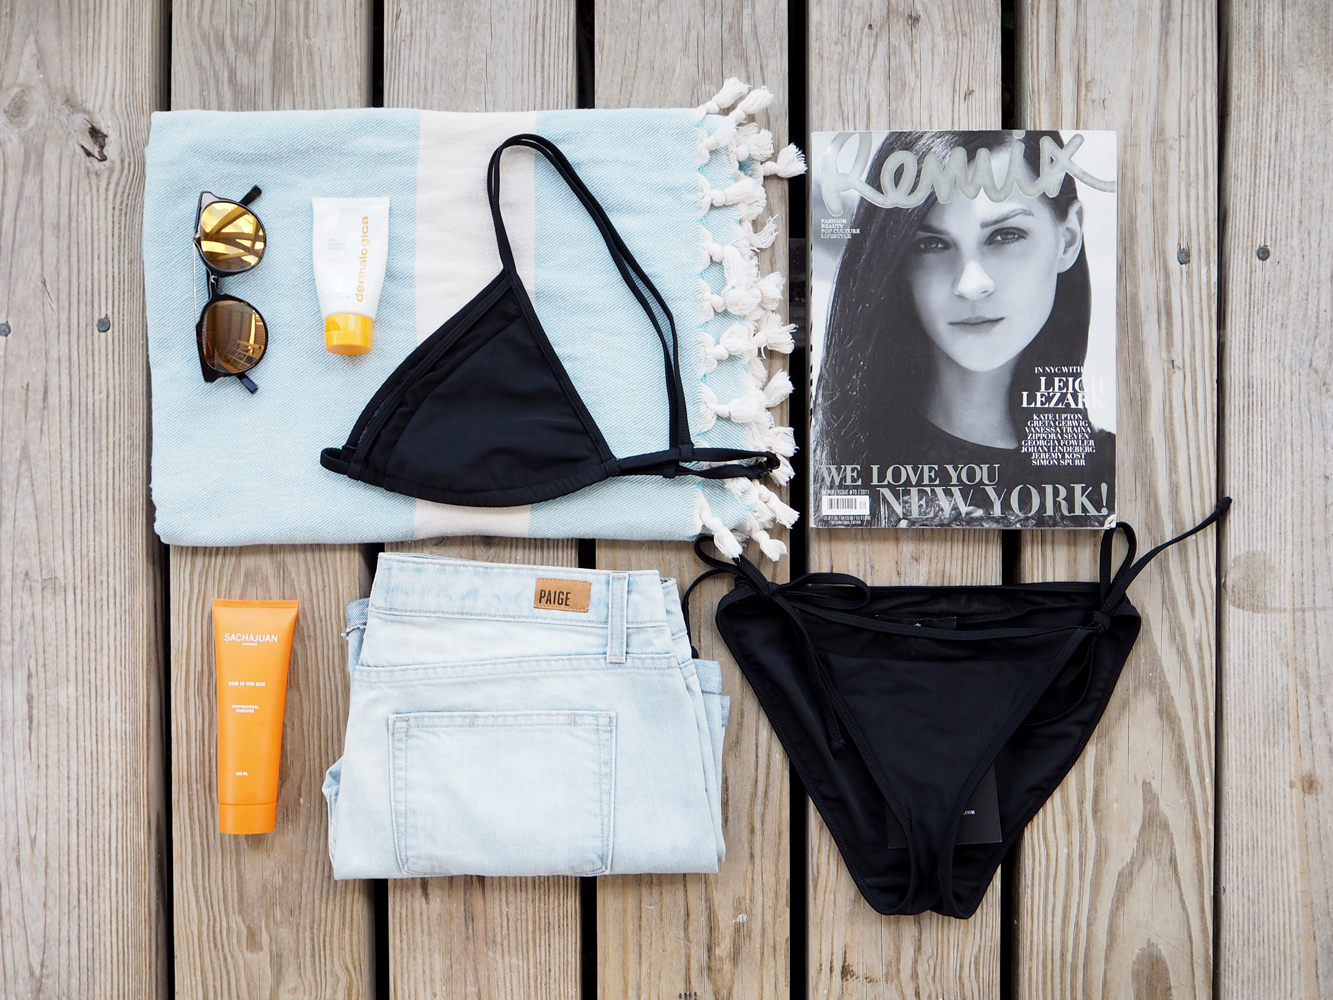 StyleAndMinimalism | Travel | Antigua | Hammam towel, Kite sunglasses, Designers Remix black bikini, Dermalogica face suncream, Remix magazine, Paige denim shorts and Sachajuan Hair In The Sun protector